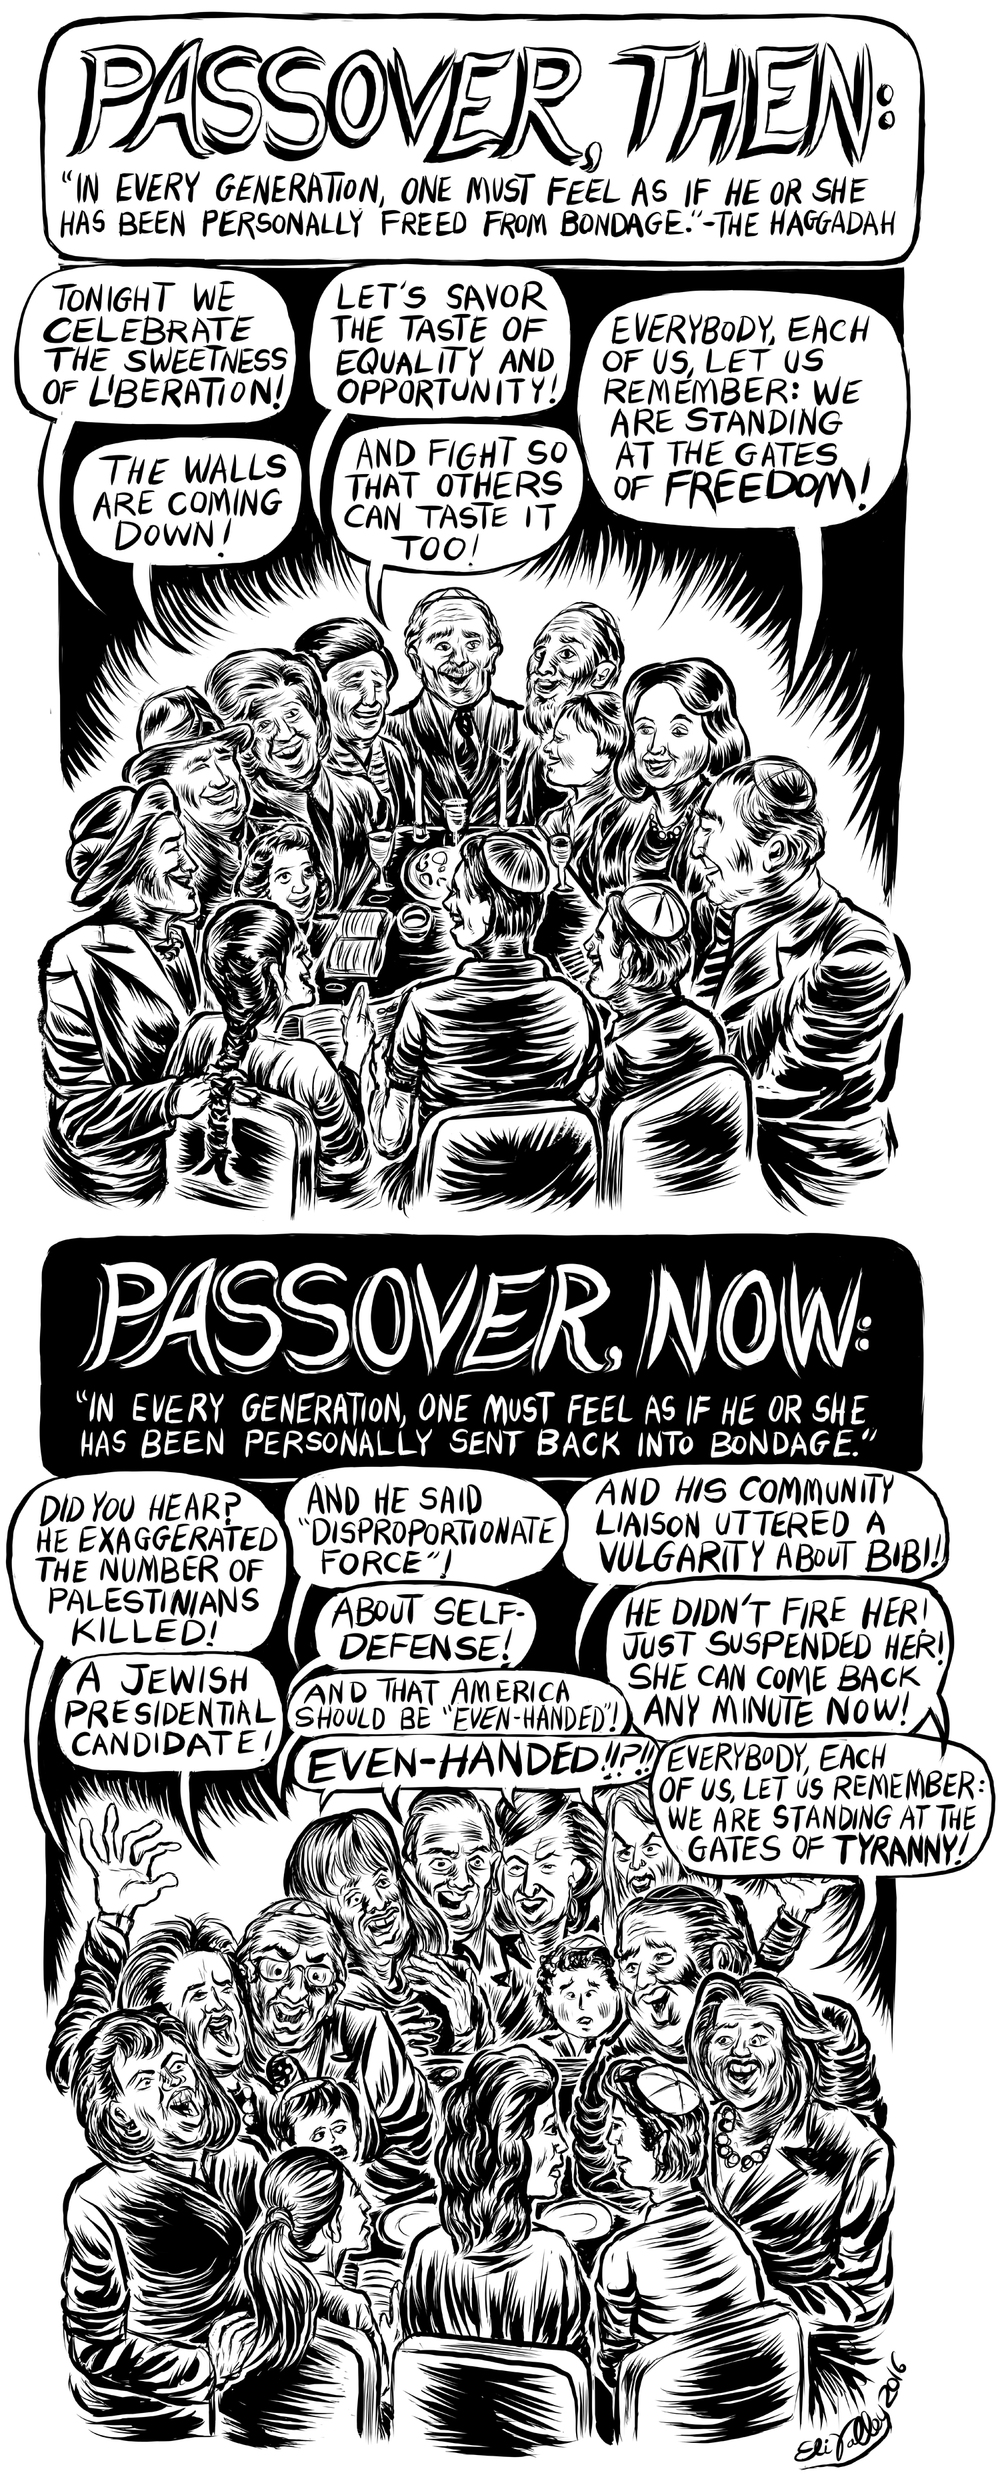 Passover From Generation To Generation, +972 Magazine, 4/19/16